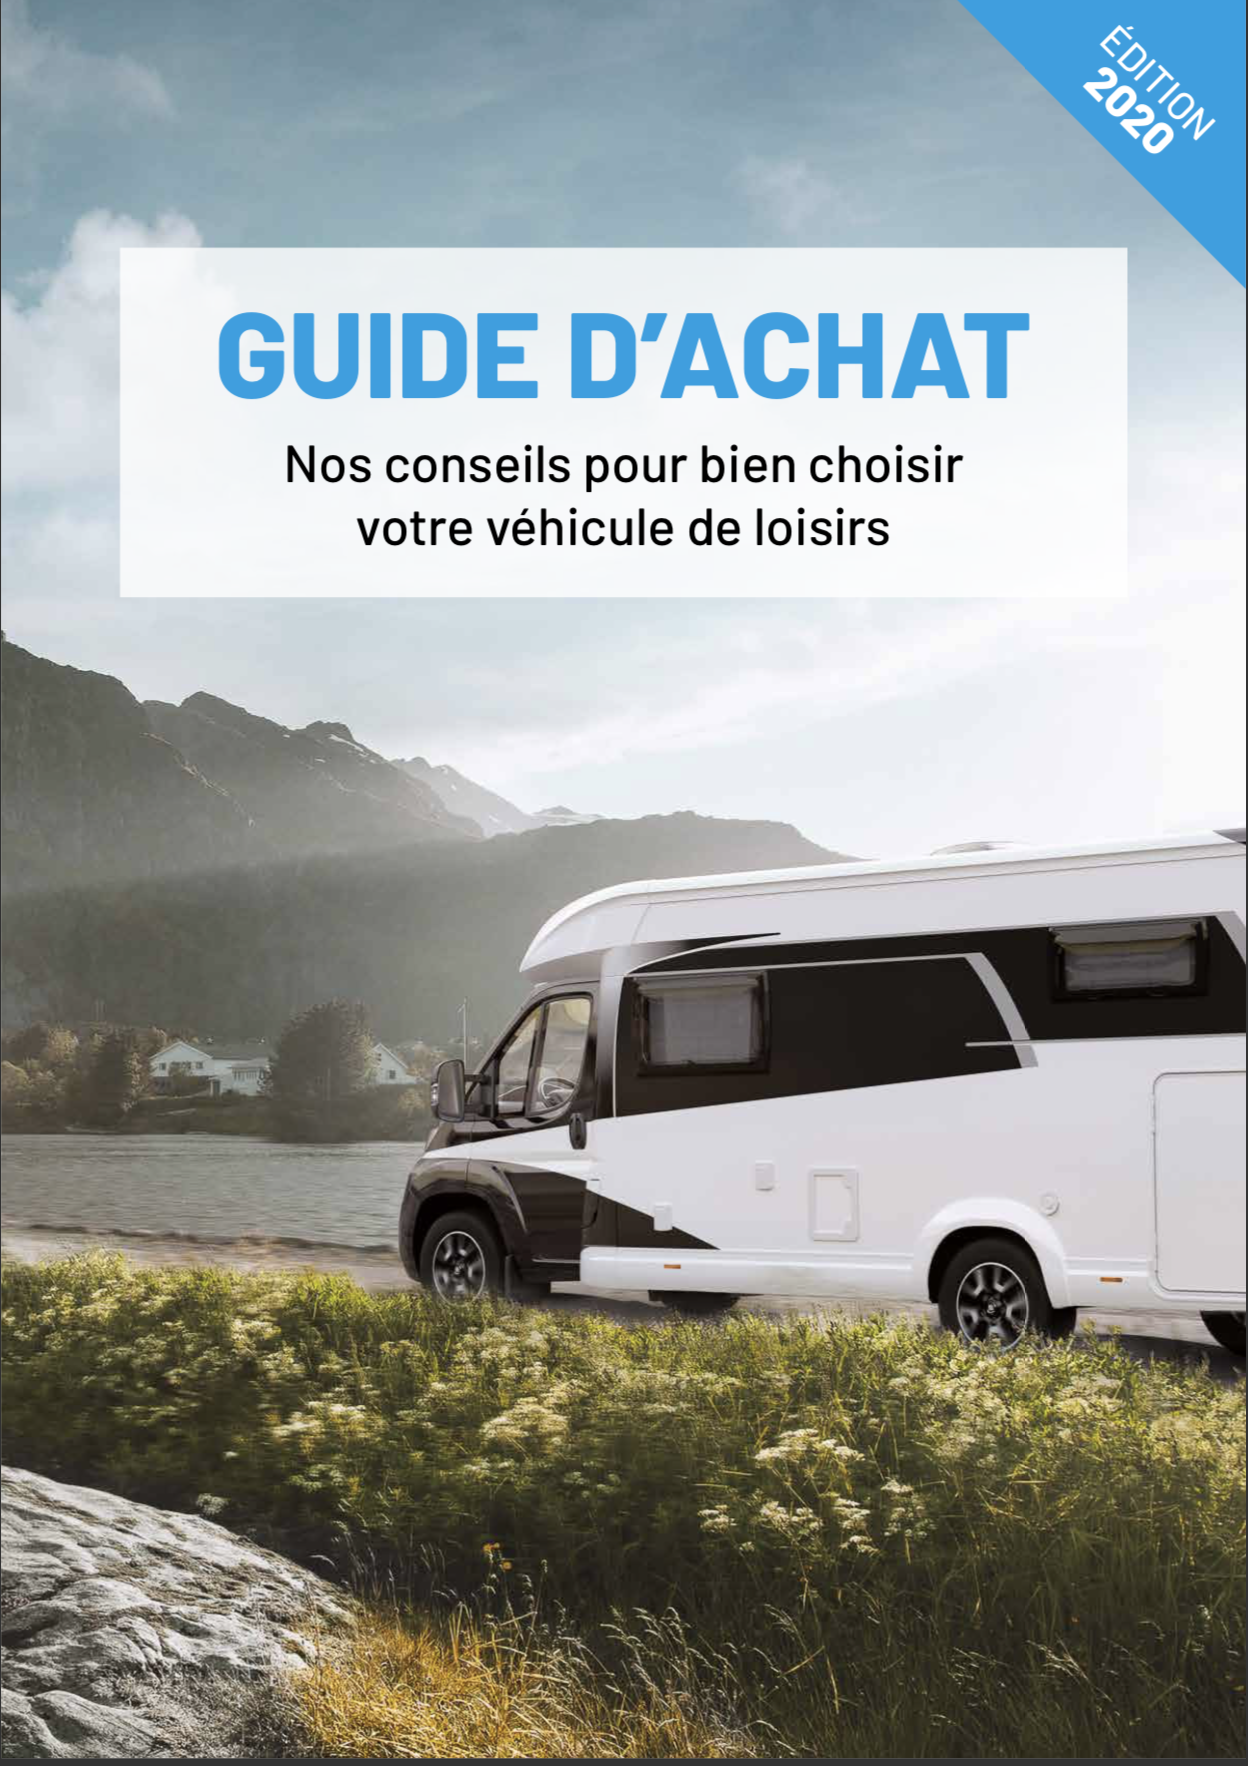 Guide d'achat 2020